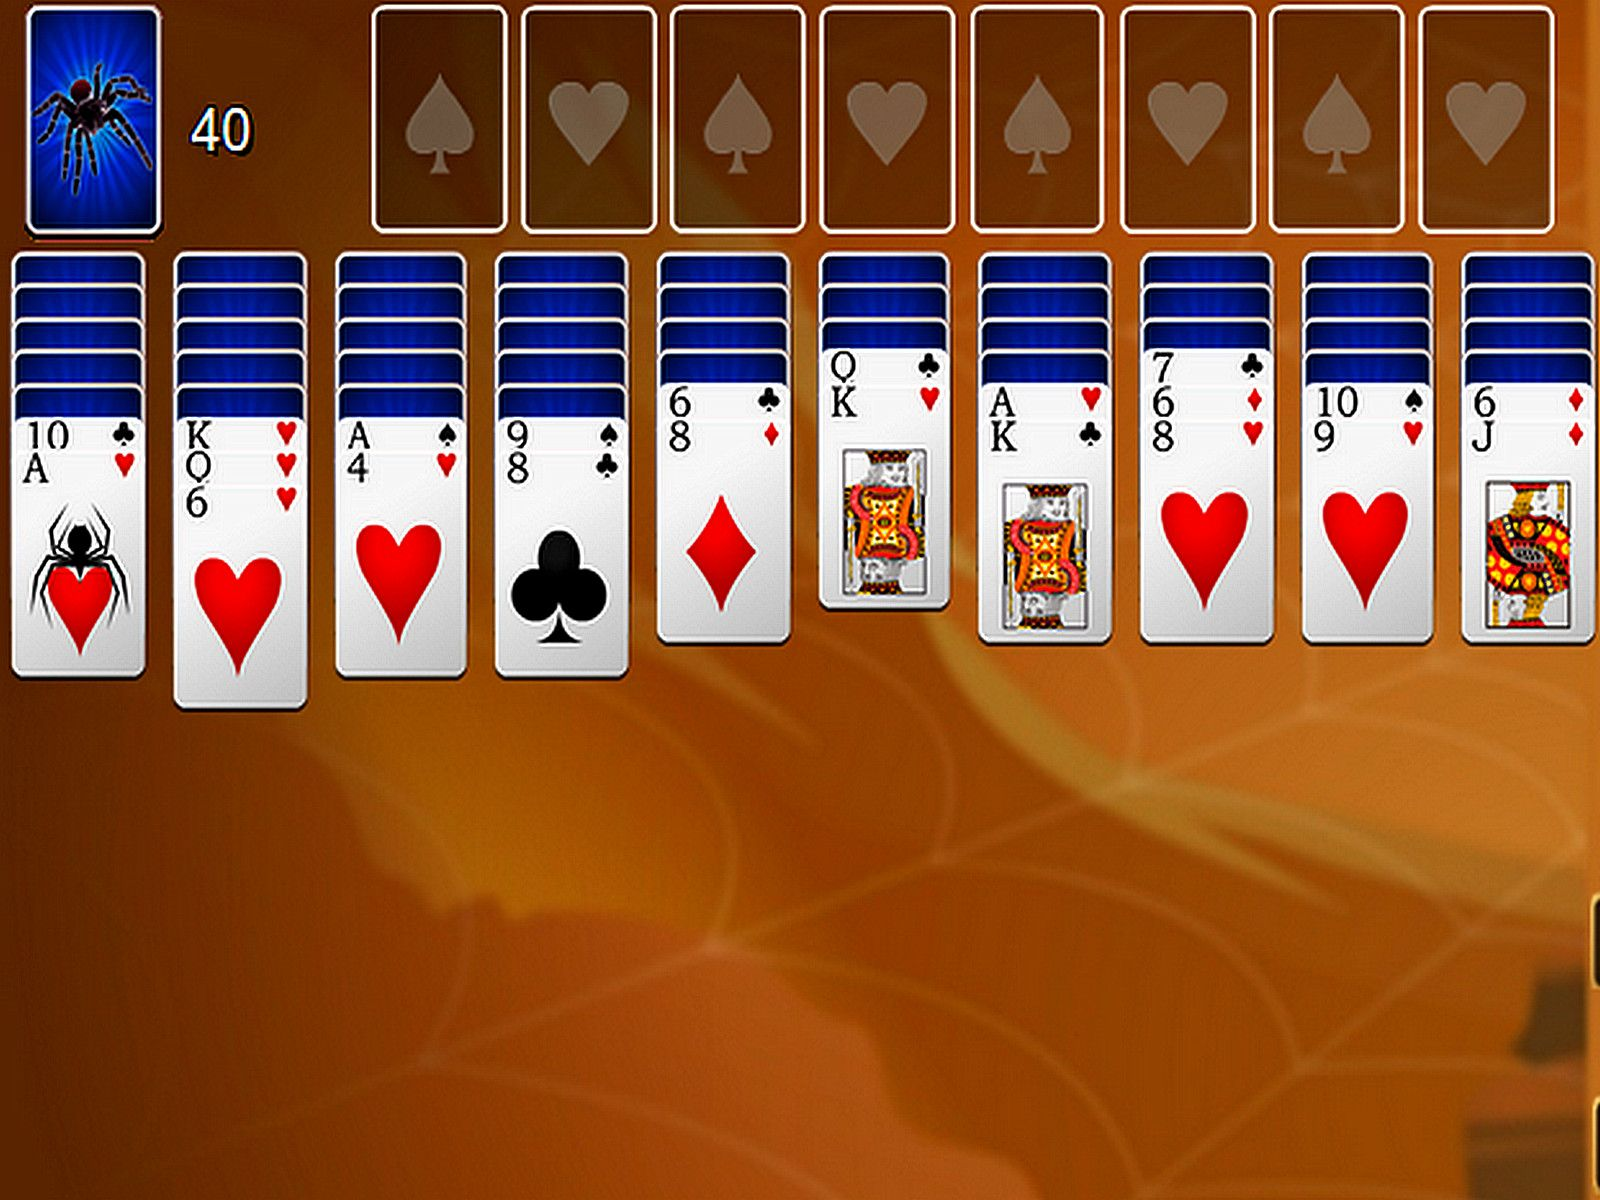 Solitaire Card Games Free Apps on Google Play in 2020